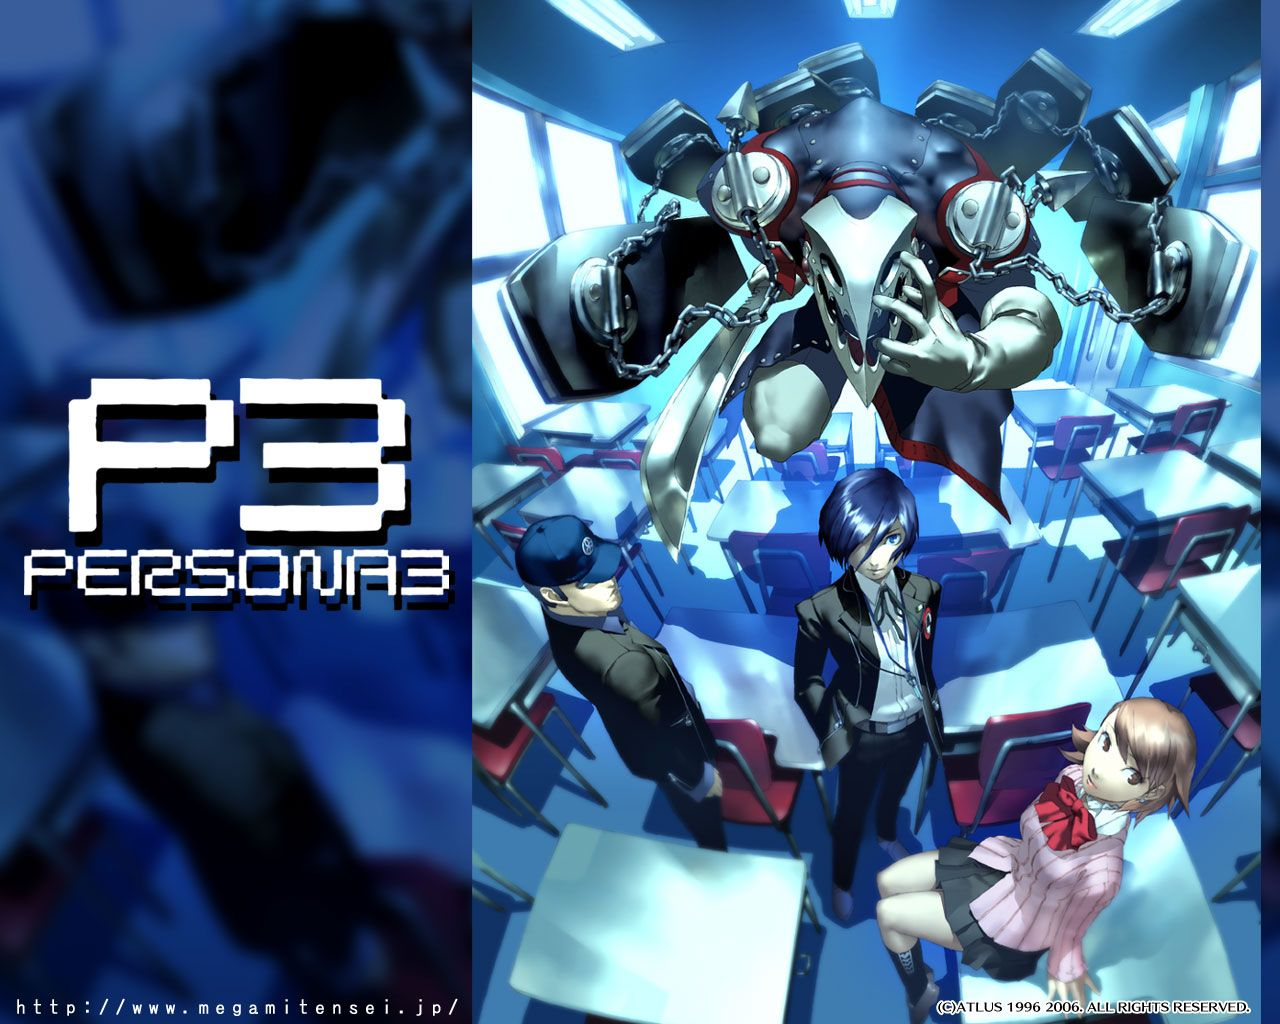 Persona3 Wallpaper 4k Thanatos: Persona 4 Wallpaper HD 1080p